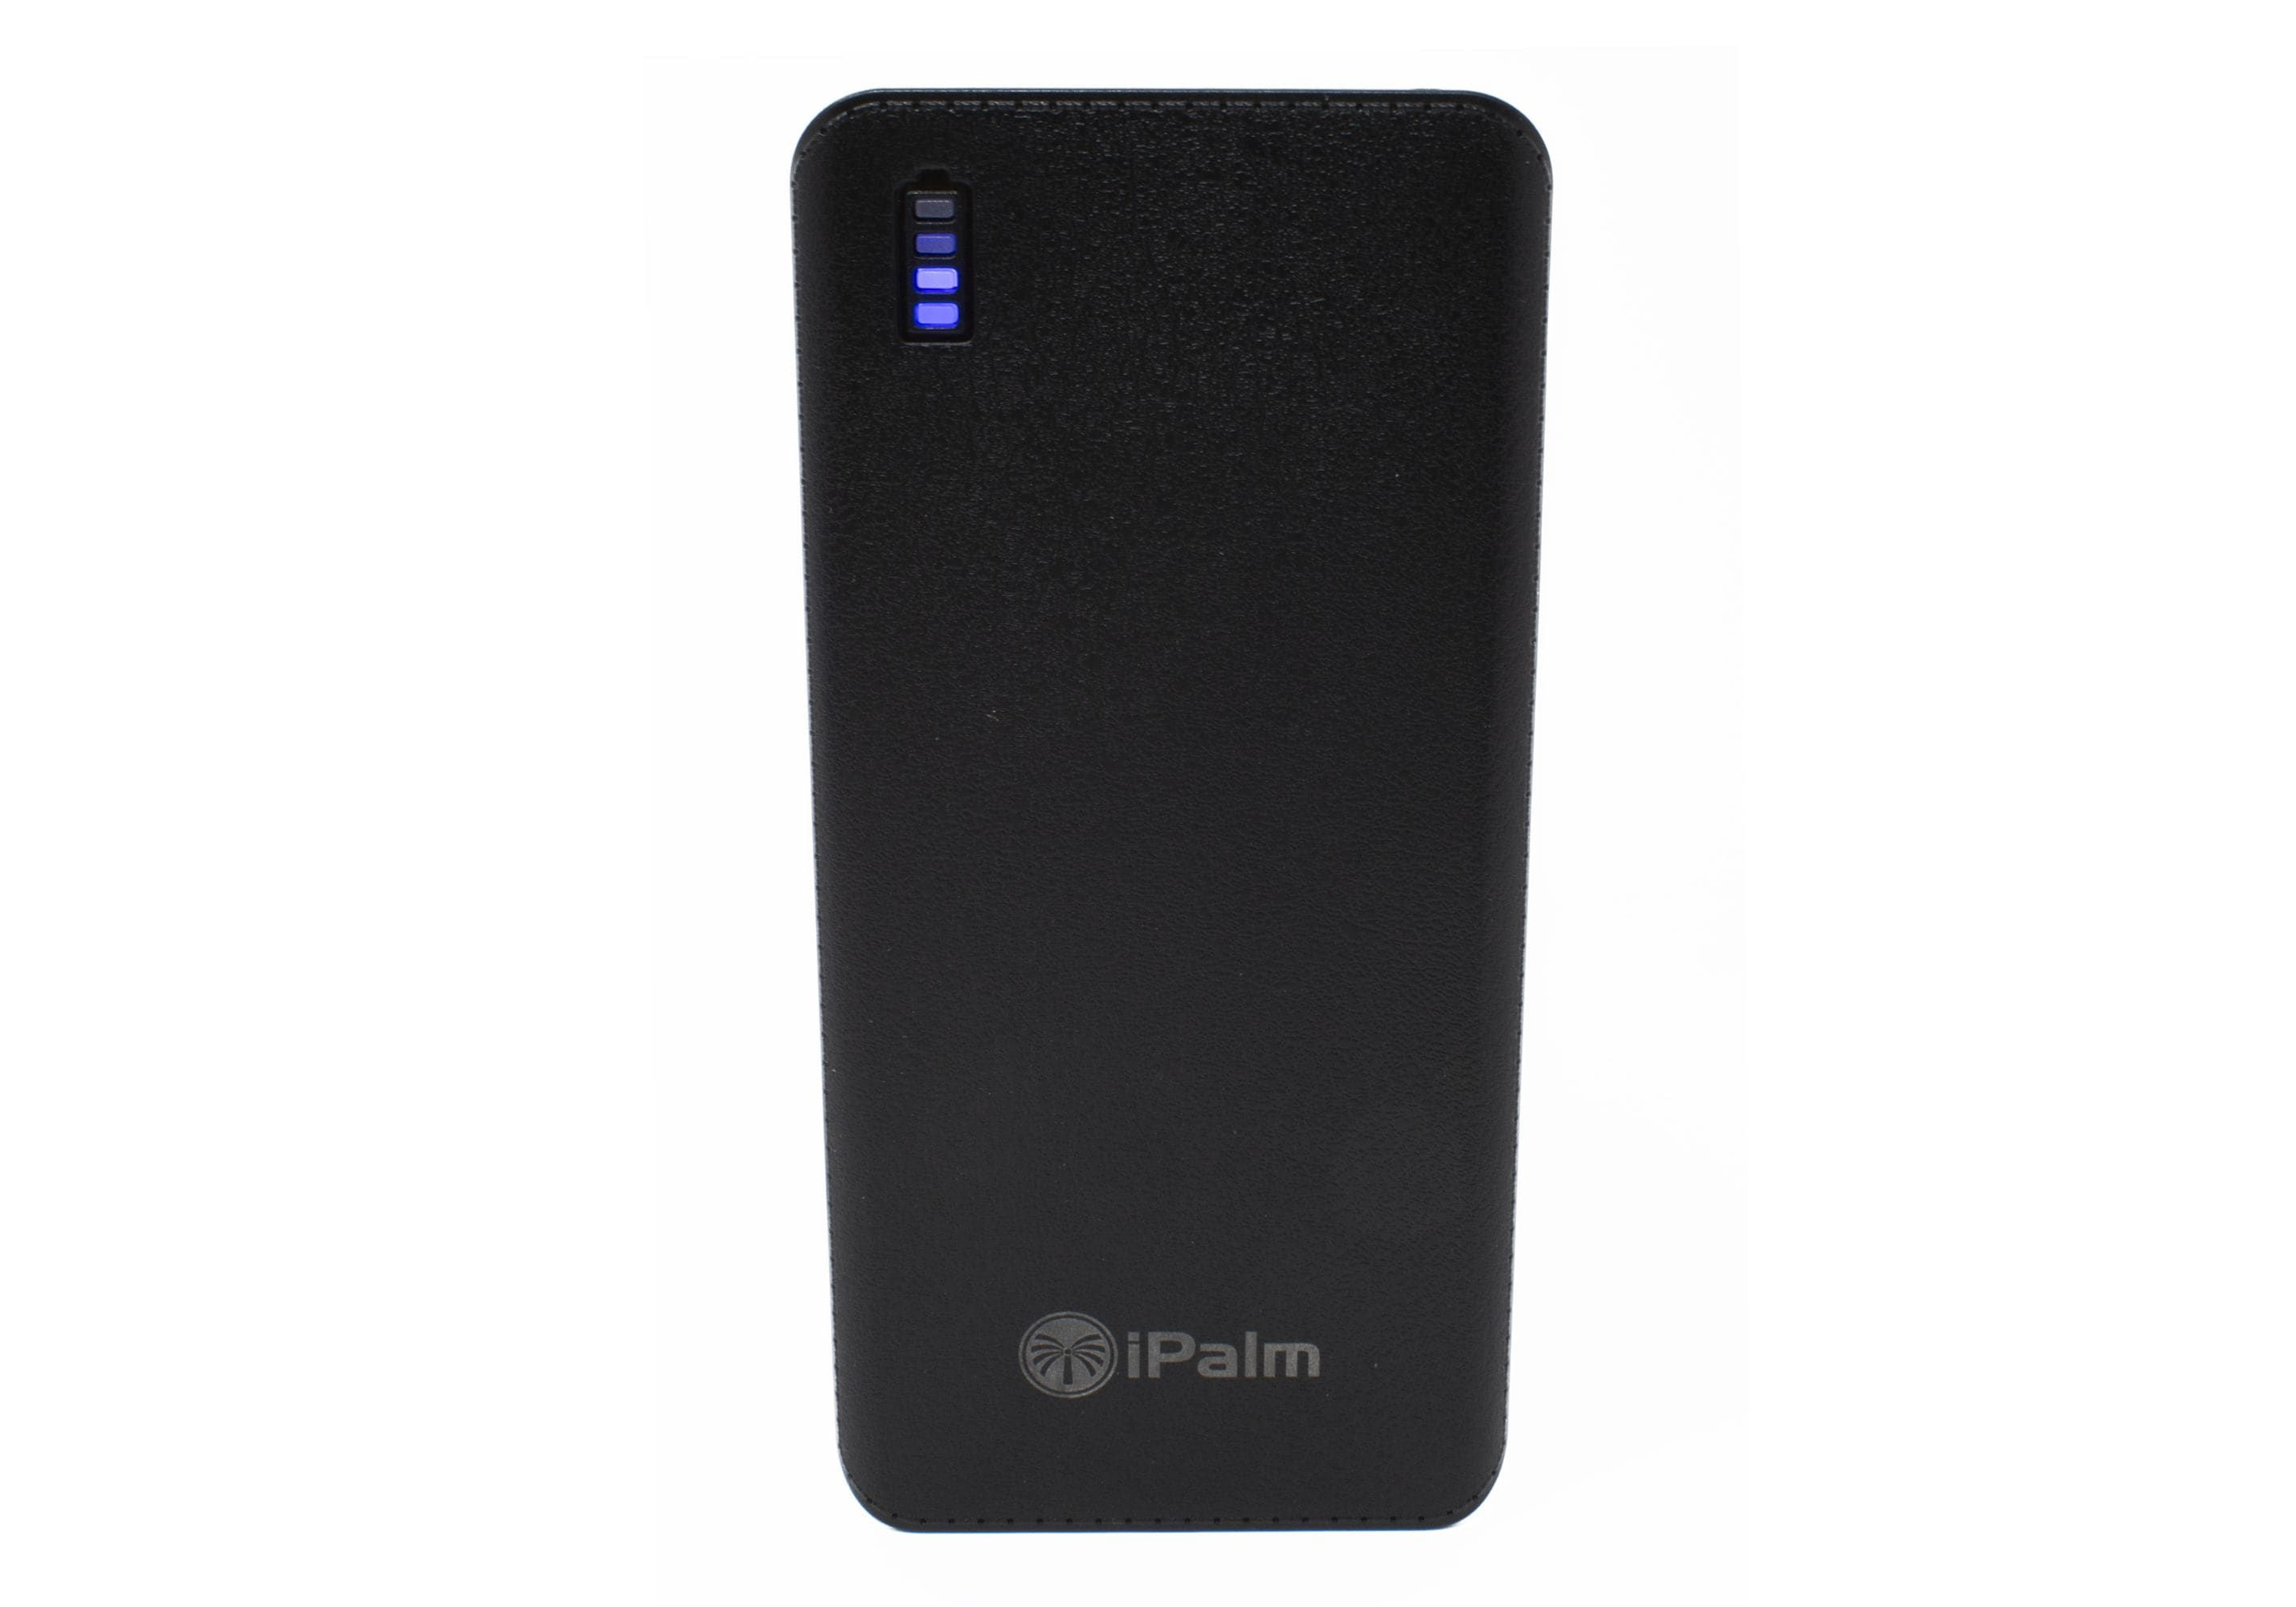 iPalm 6000 MaH power bank- Black